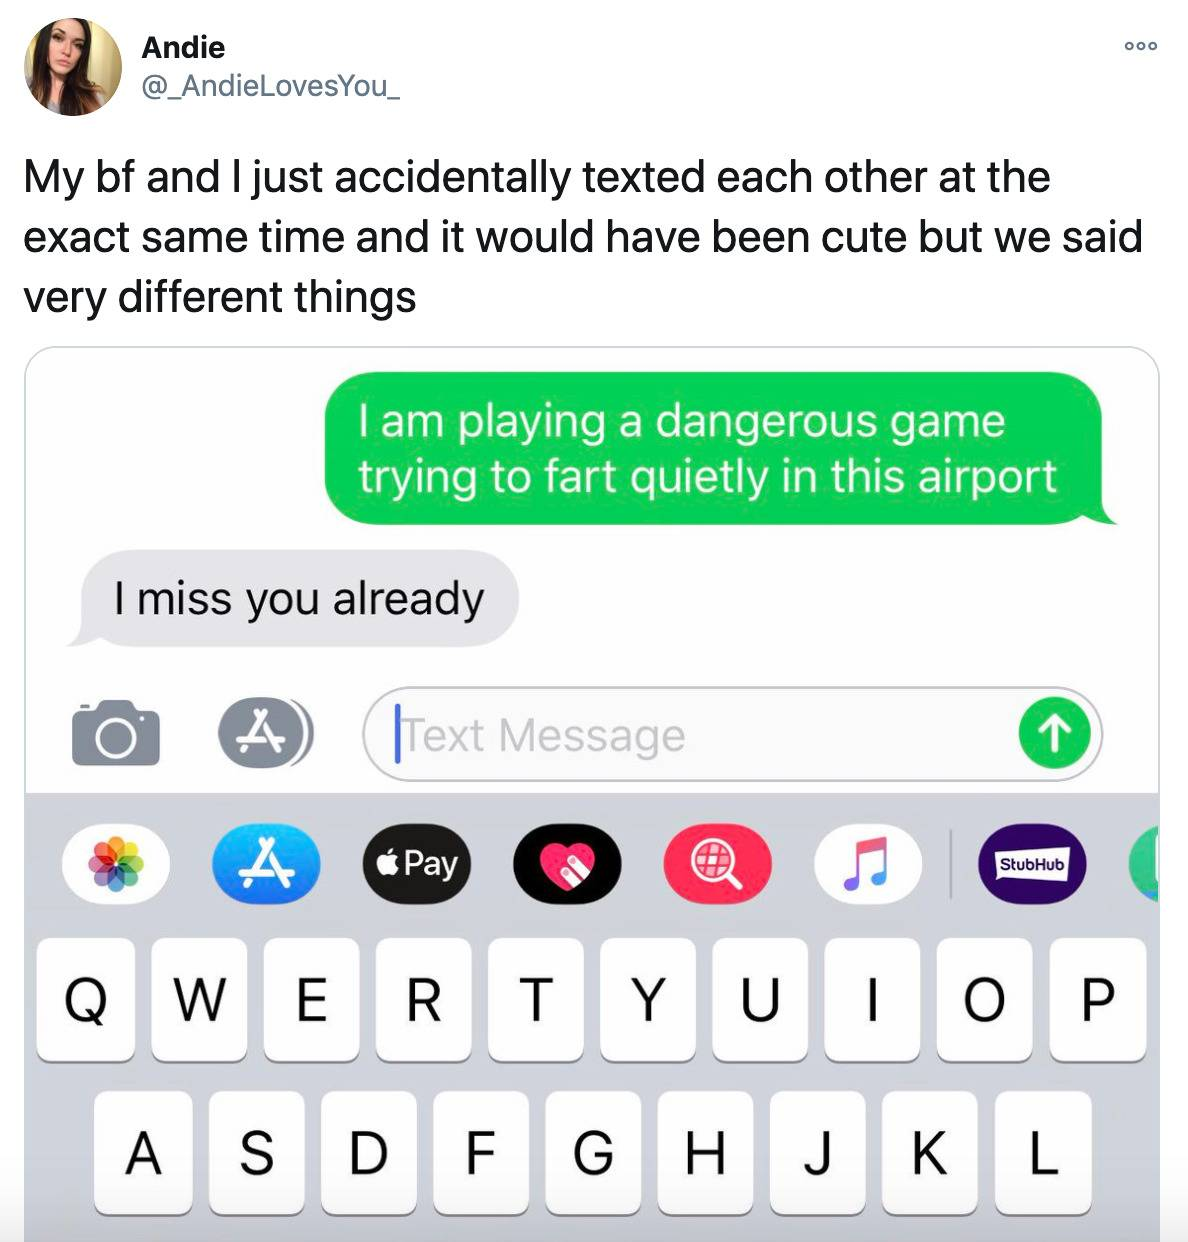 boyfriend and girlfriend texted each other at the same time saying different things